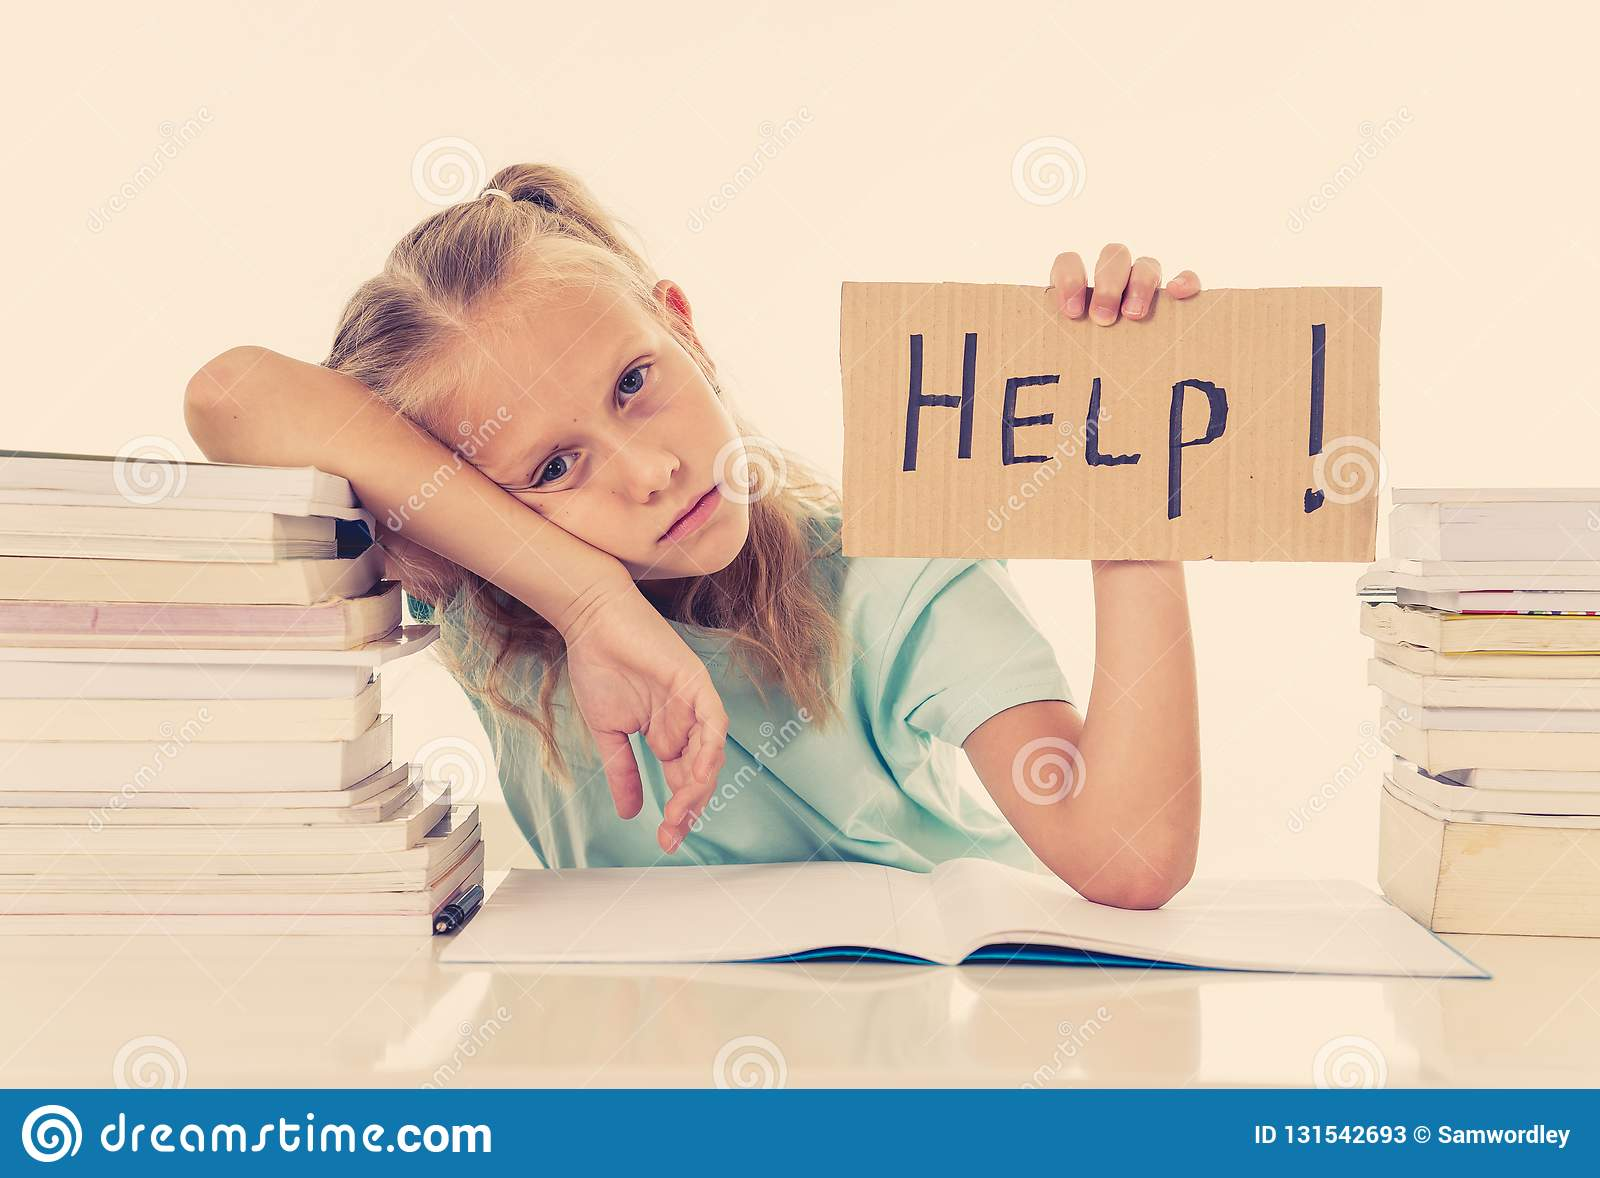 Frustrated little schoolgirl feeling a failure unable to concentrate in reading and writing difficulties learning problem